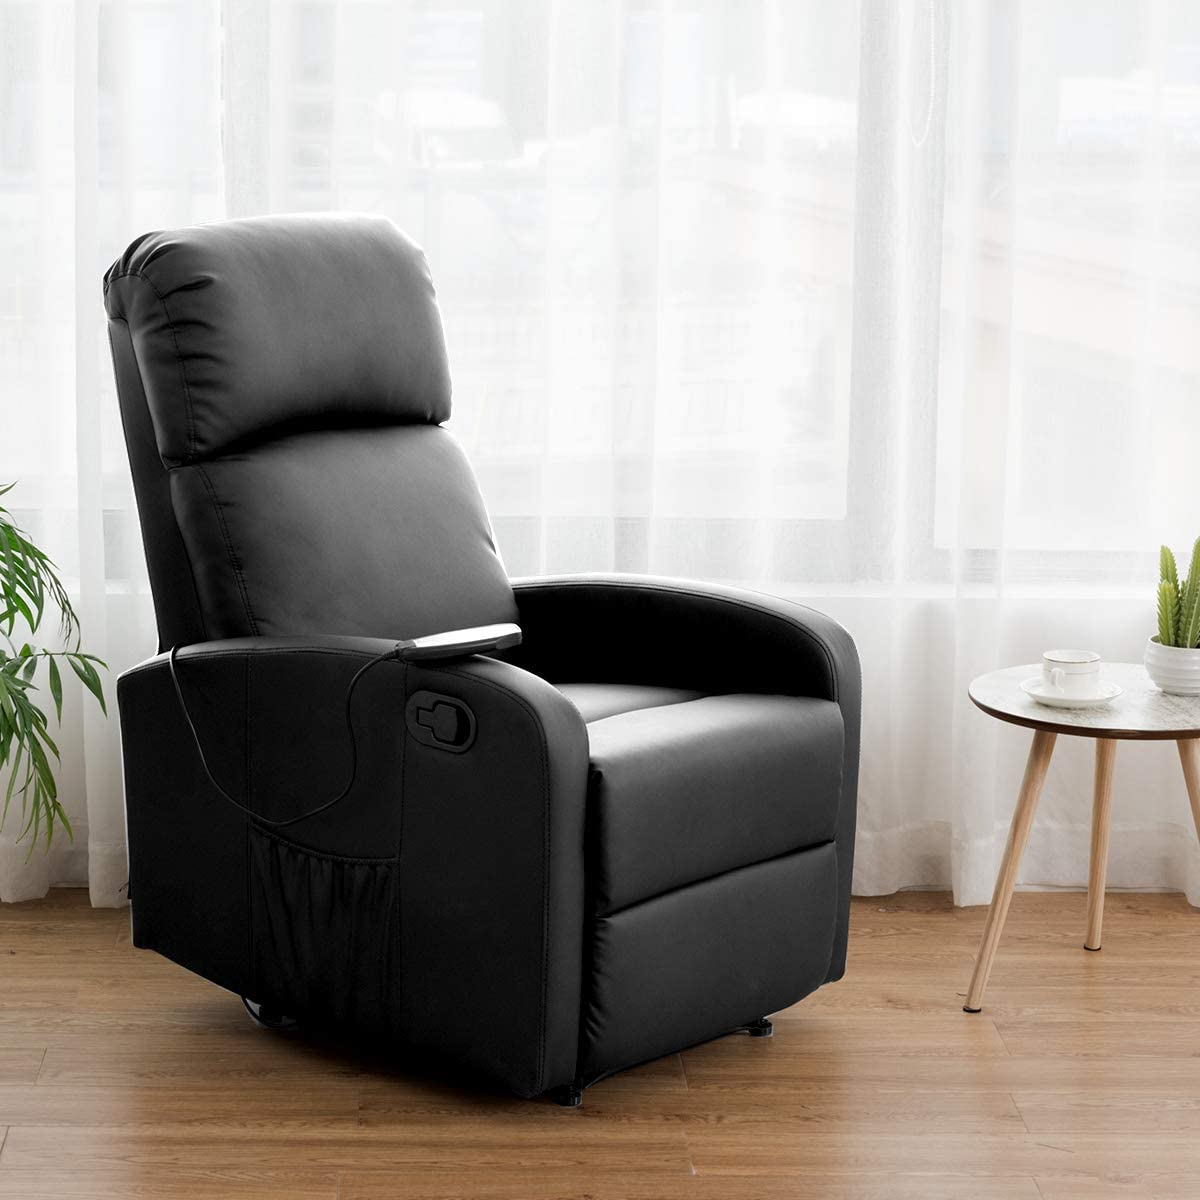 Giantex Manual Leather Padded Recliner Chair Luxury leather